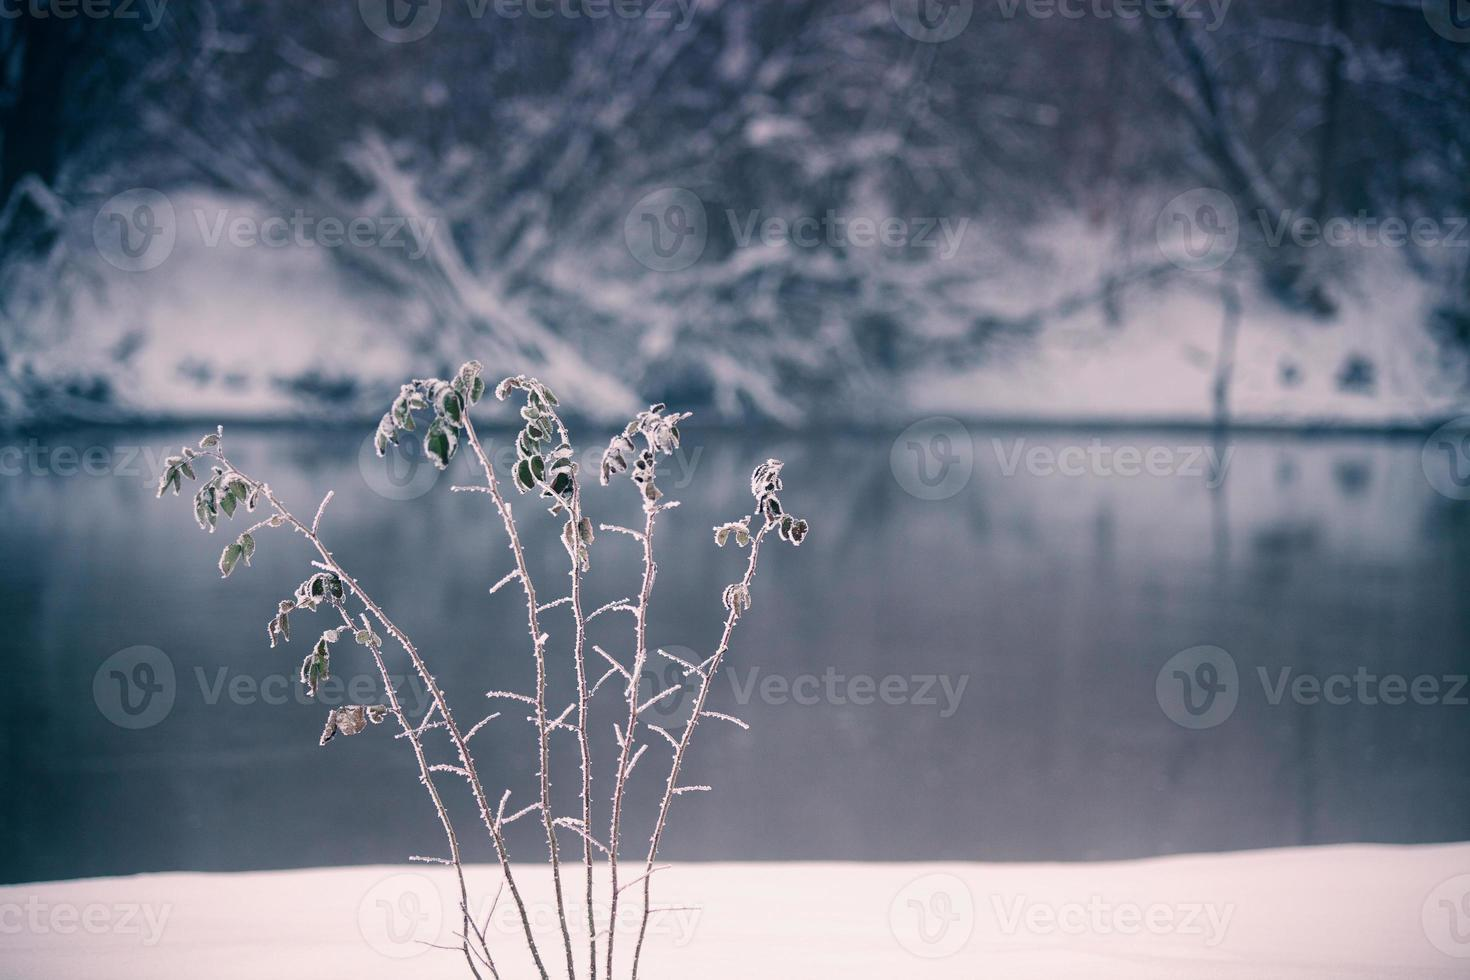 Snow and winter. Belarus village, countryside in winter photo